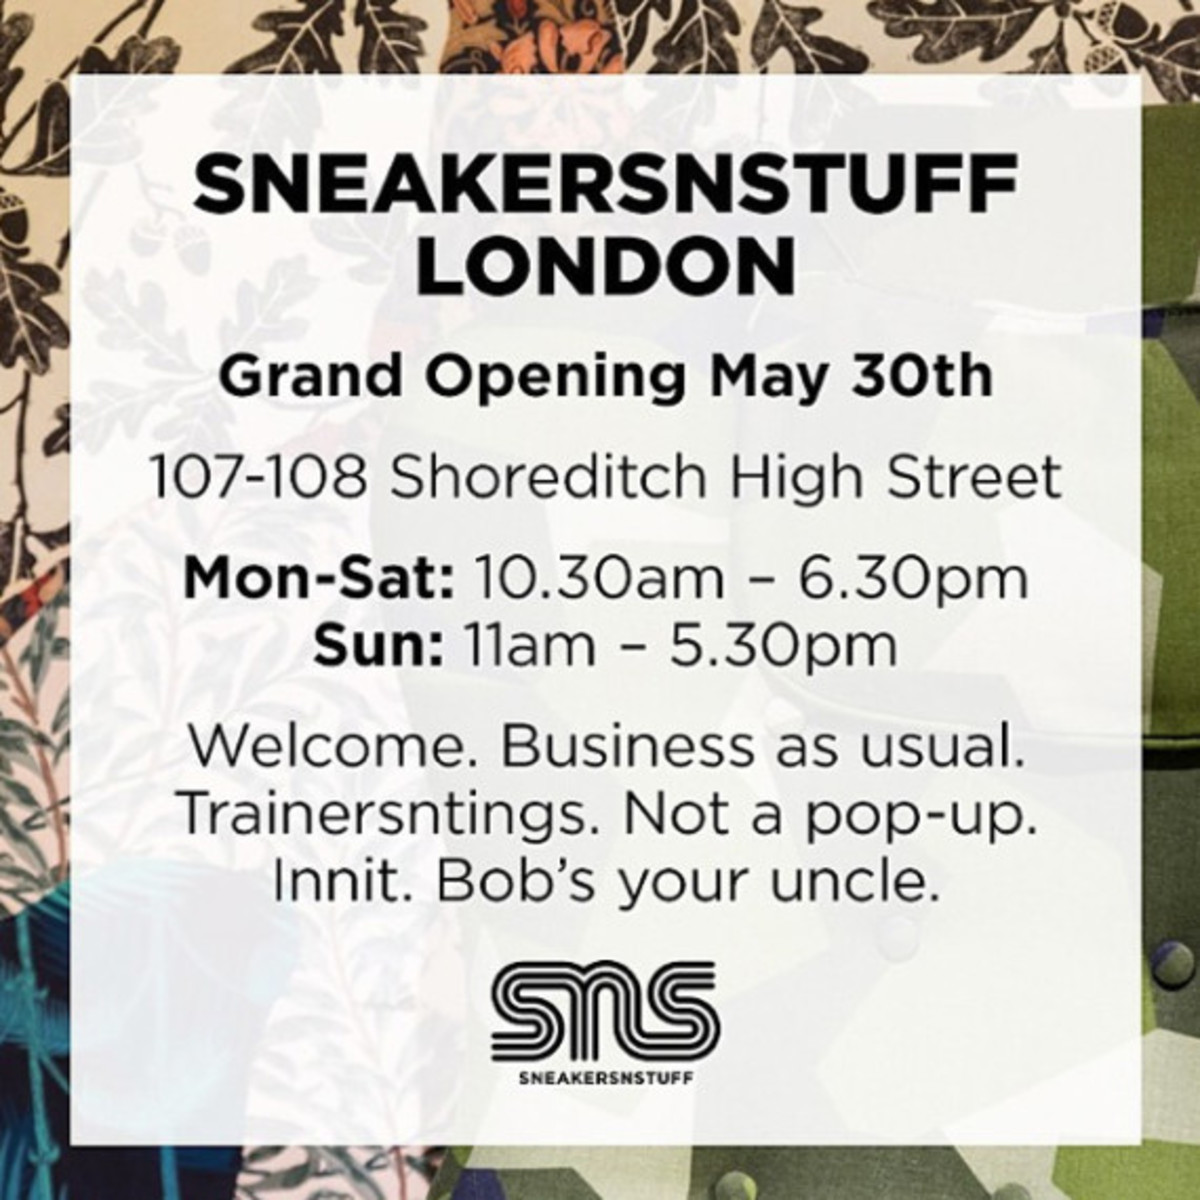 SneakersNStuff London - Grand Opening Re-Stock Event - 10